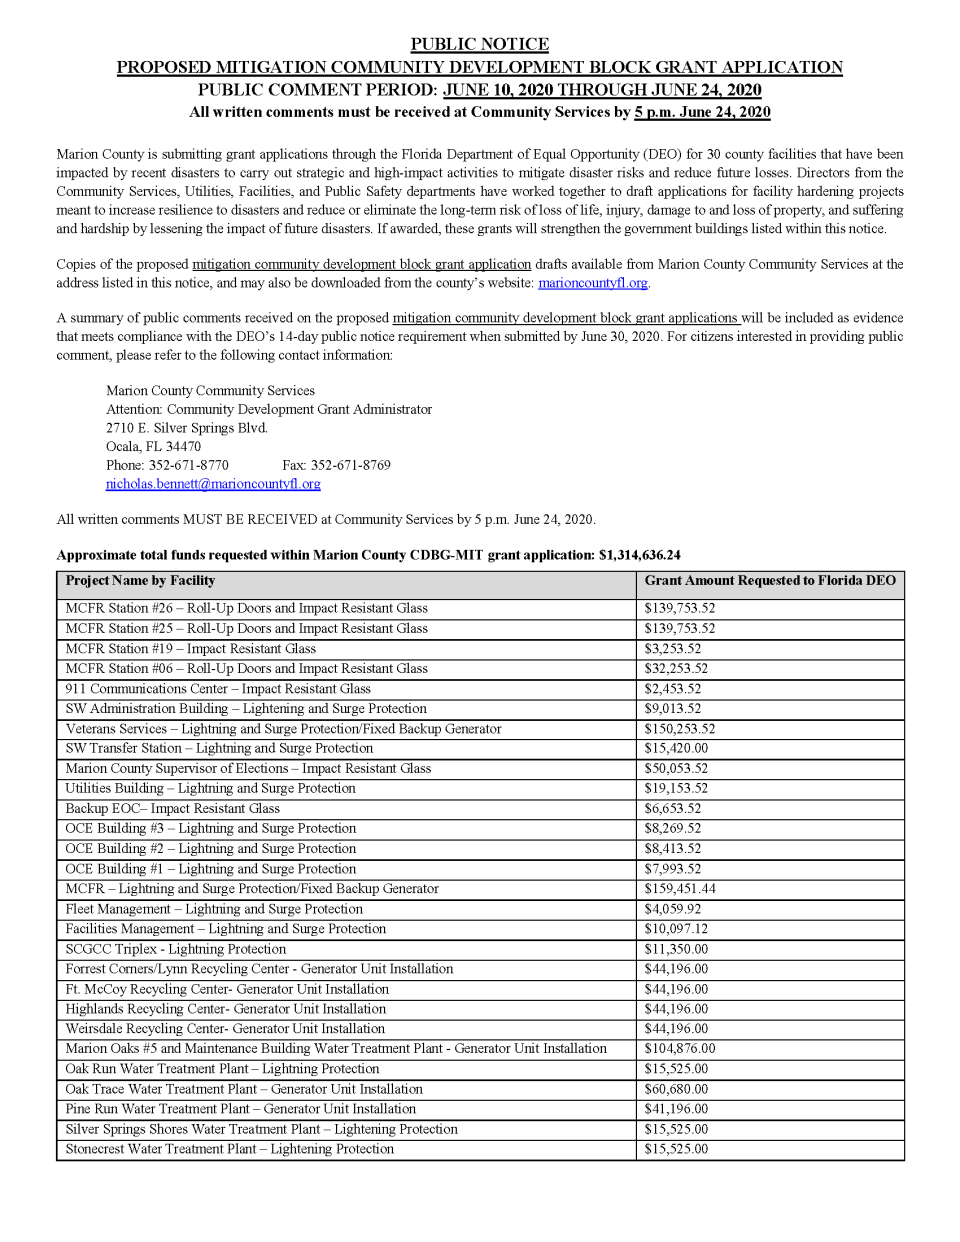 View the two-page grant application summary here.